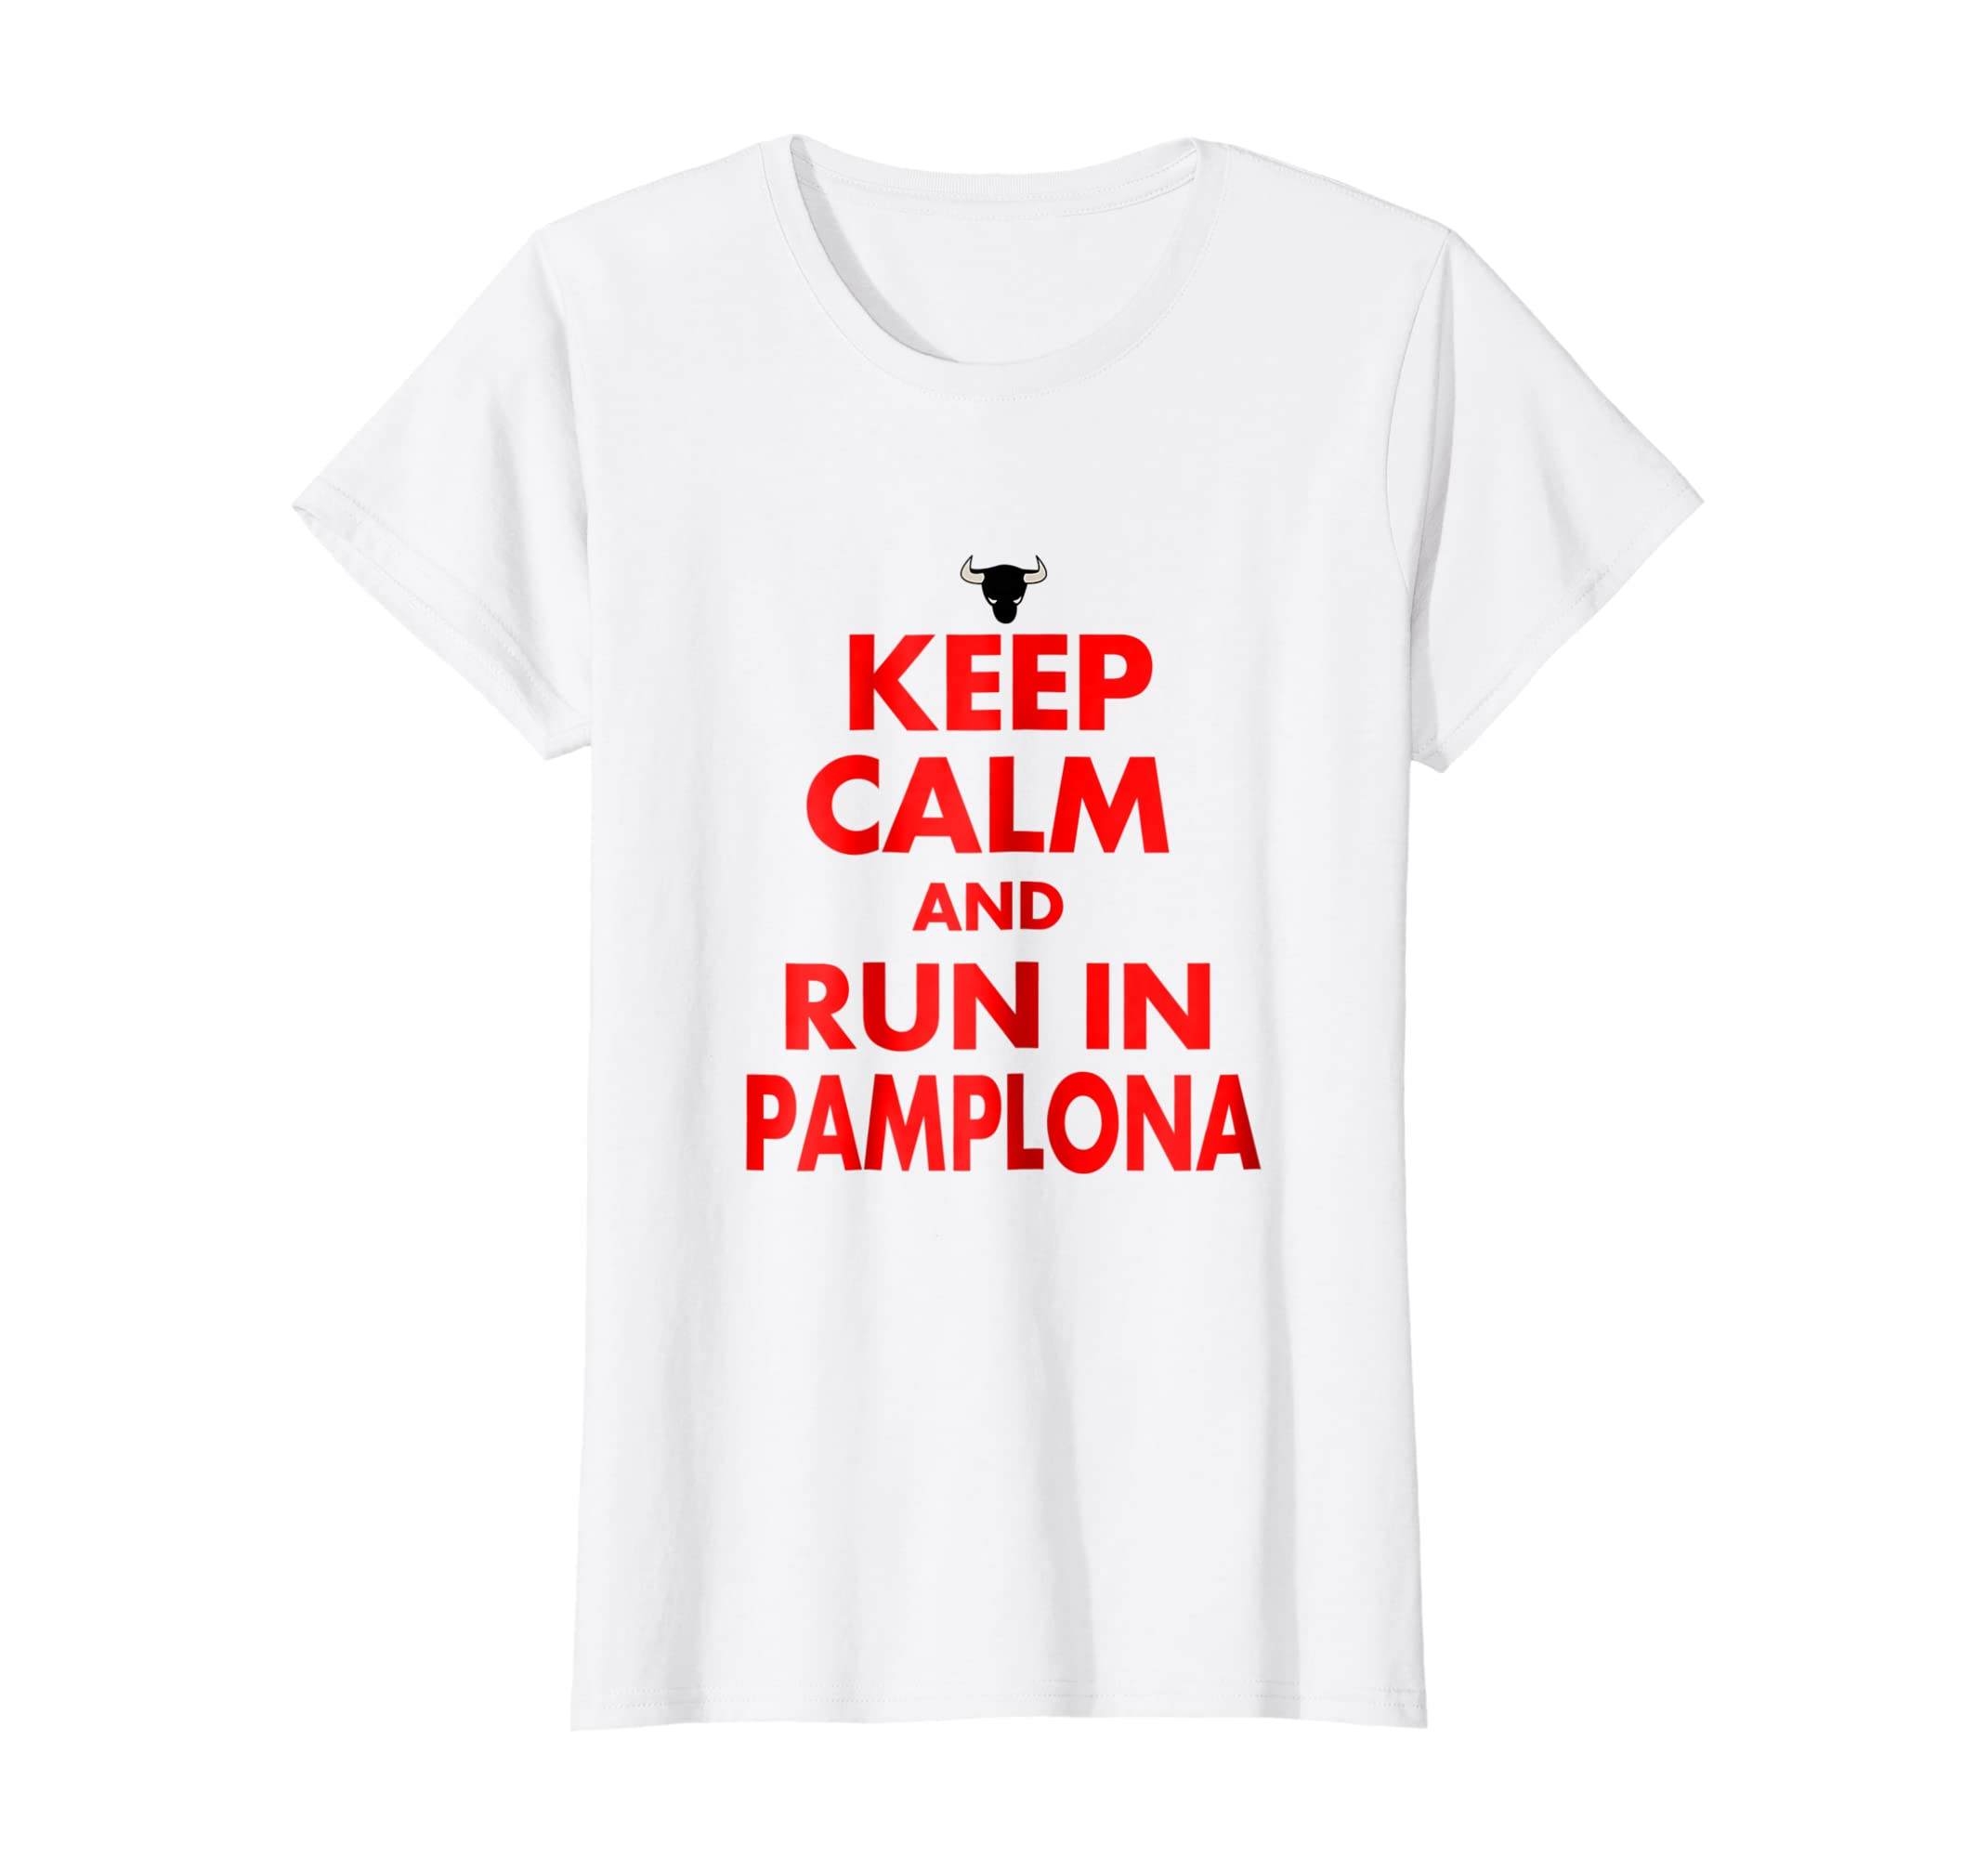 Amazon.com: San Fermin And Run In Pamplona Shirt Camisetas de Espana: Clothing